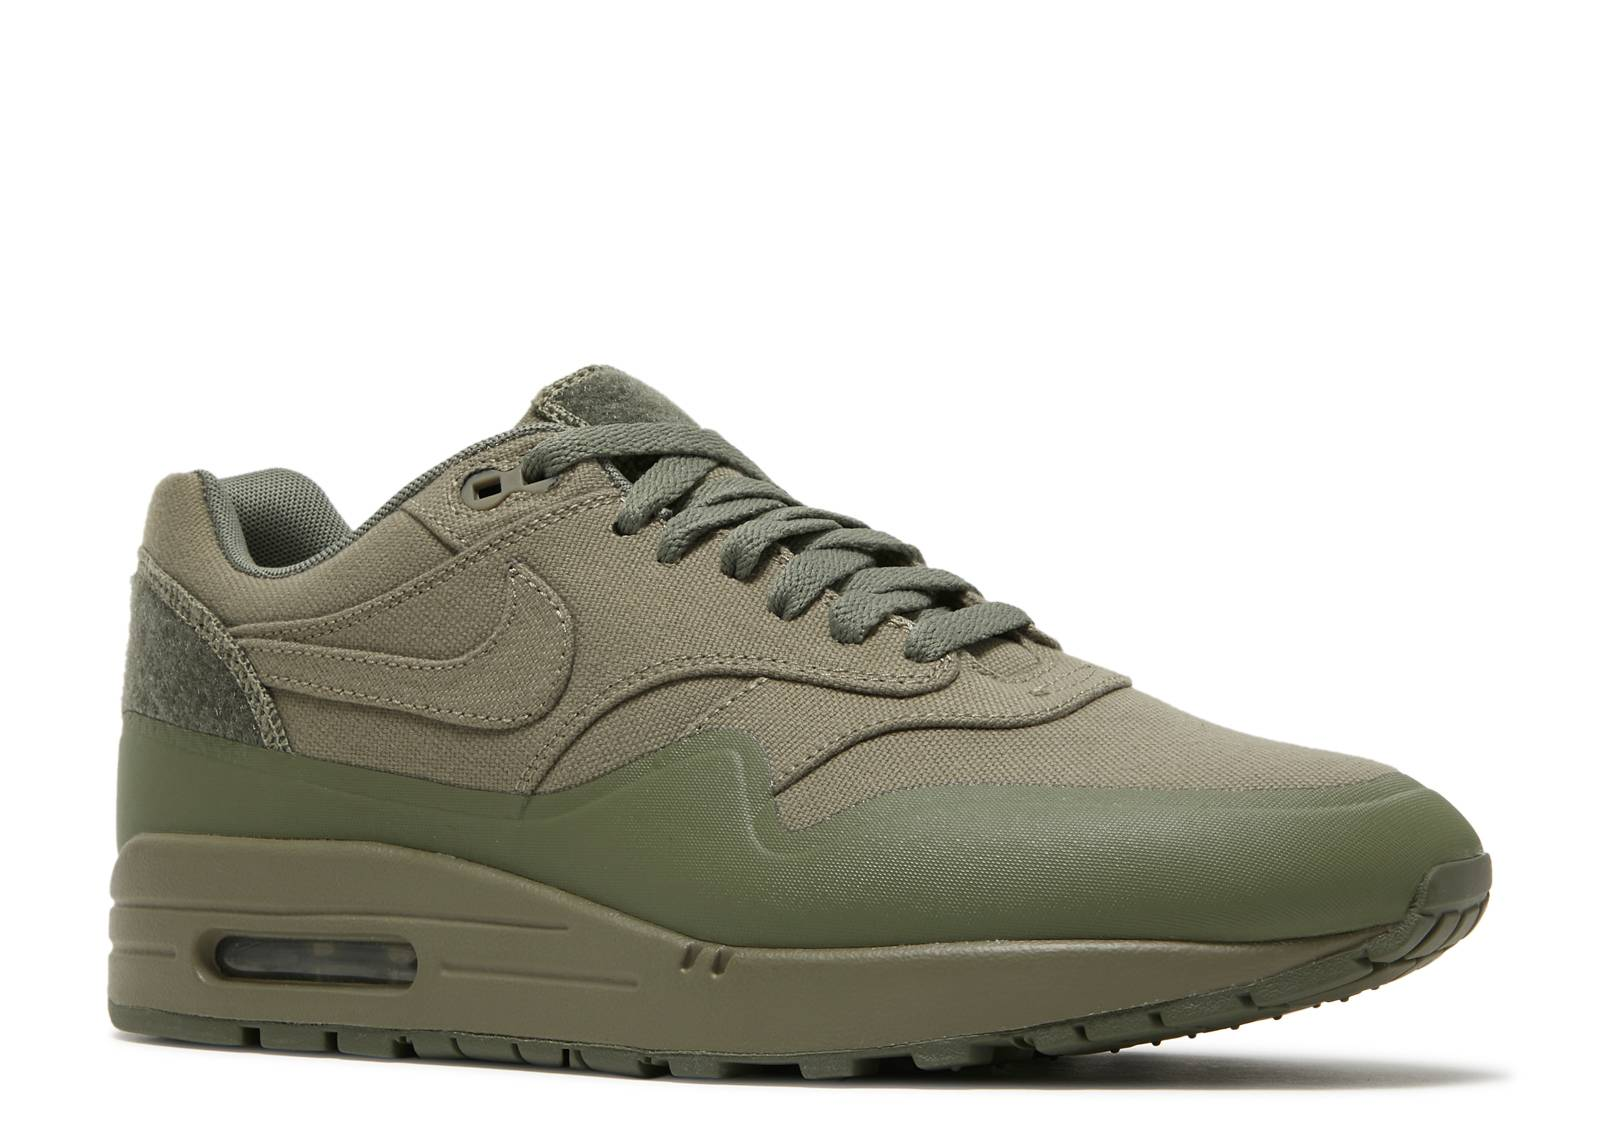 detailed look 64776 0e6c0 ... Patch NIKE   Flickr air max 1 v sp .